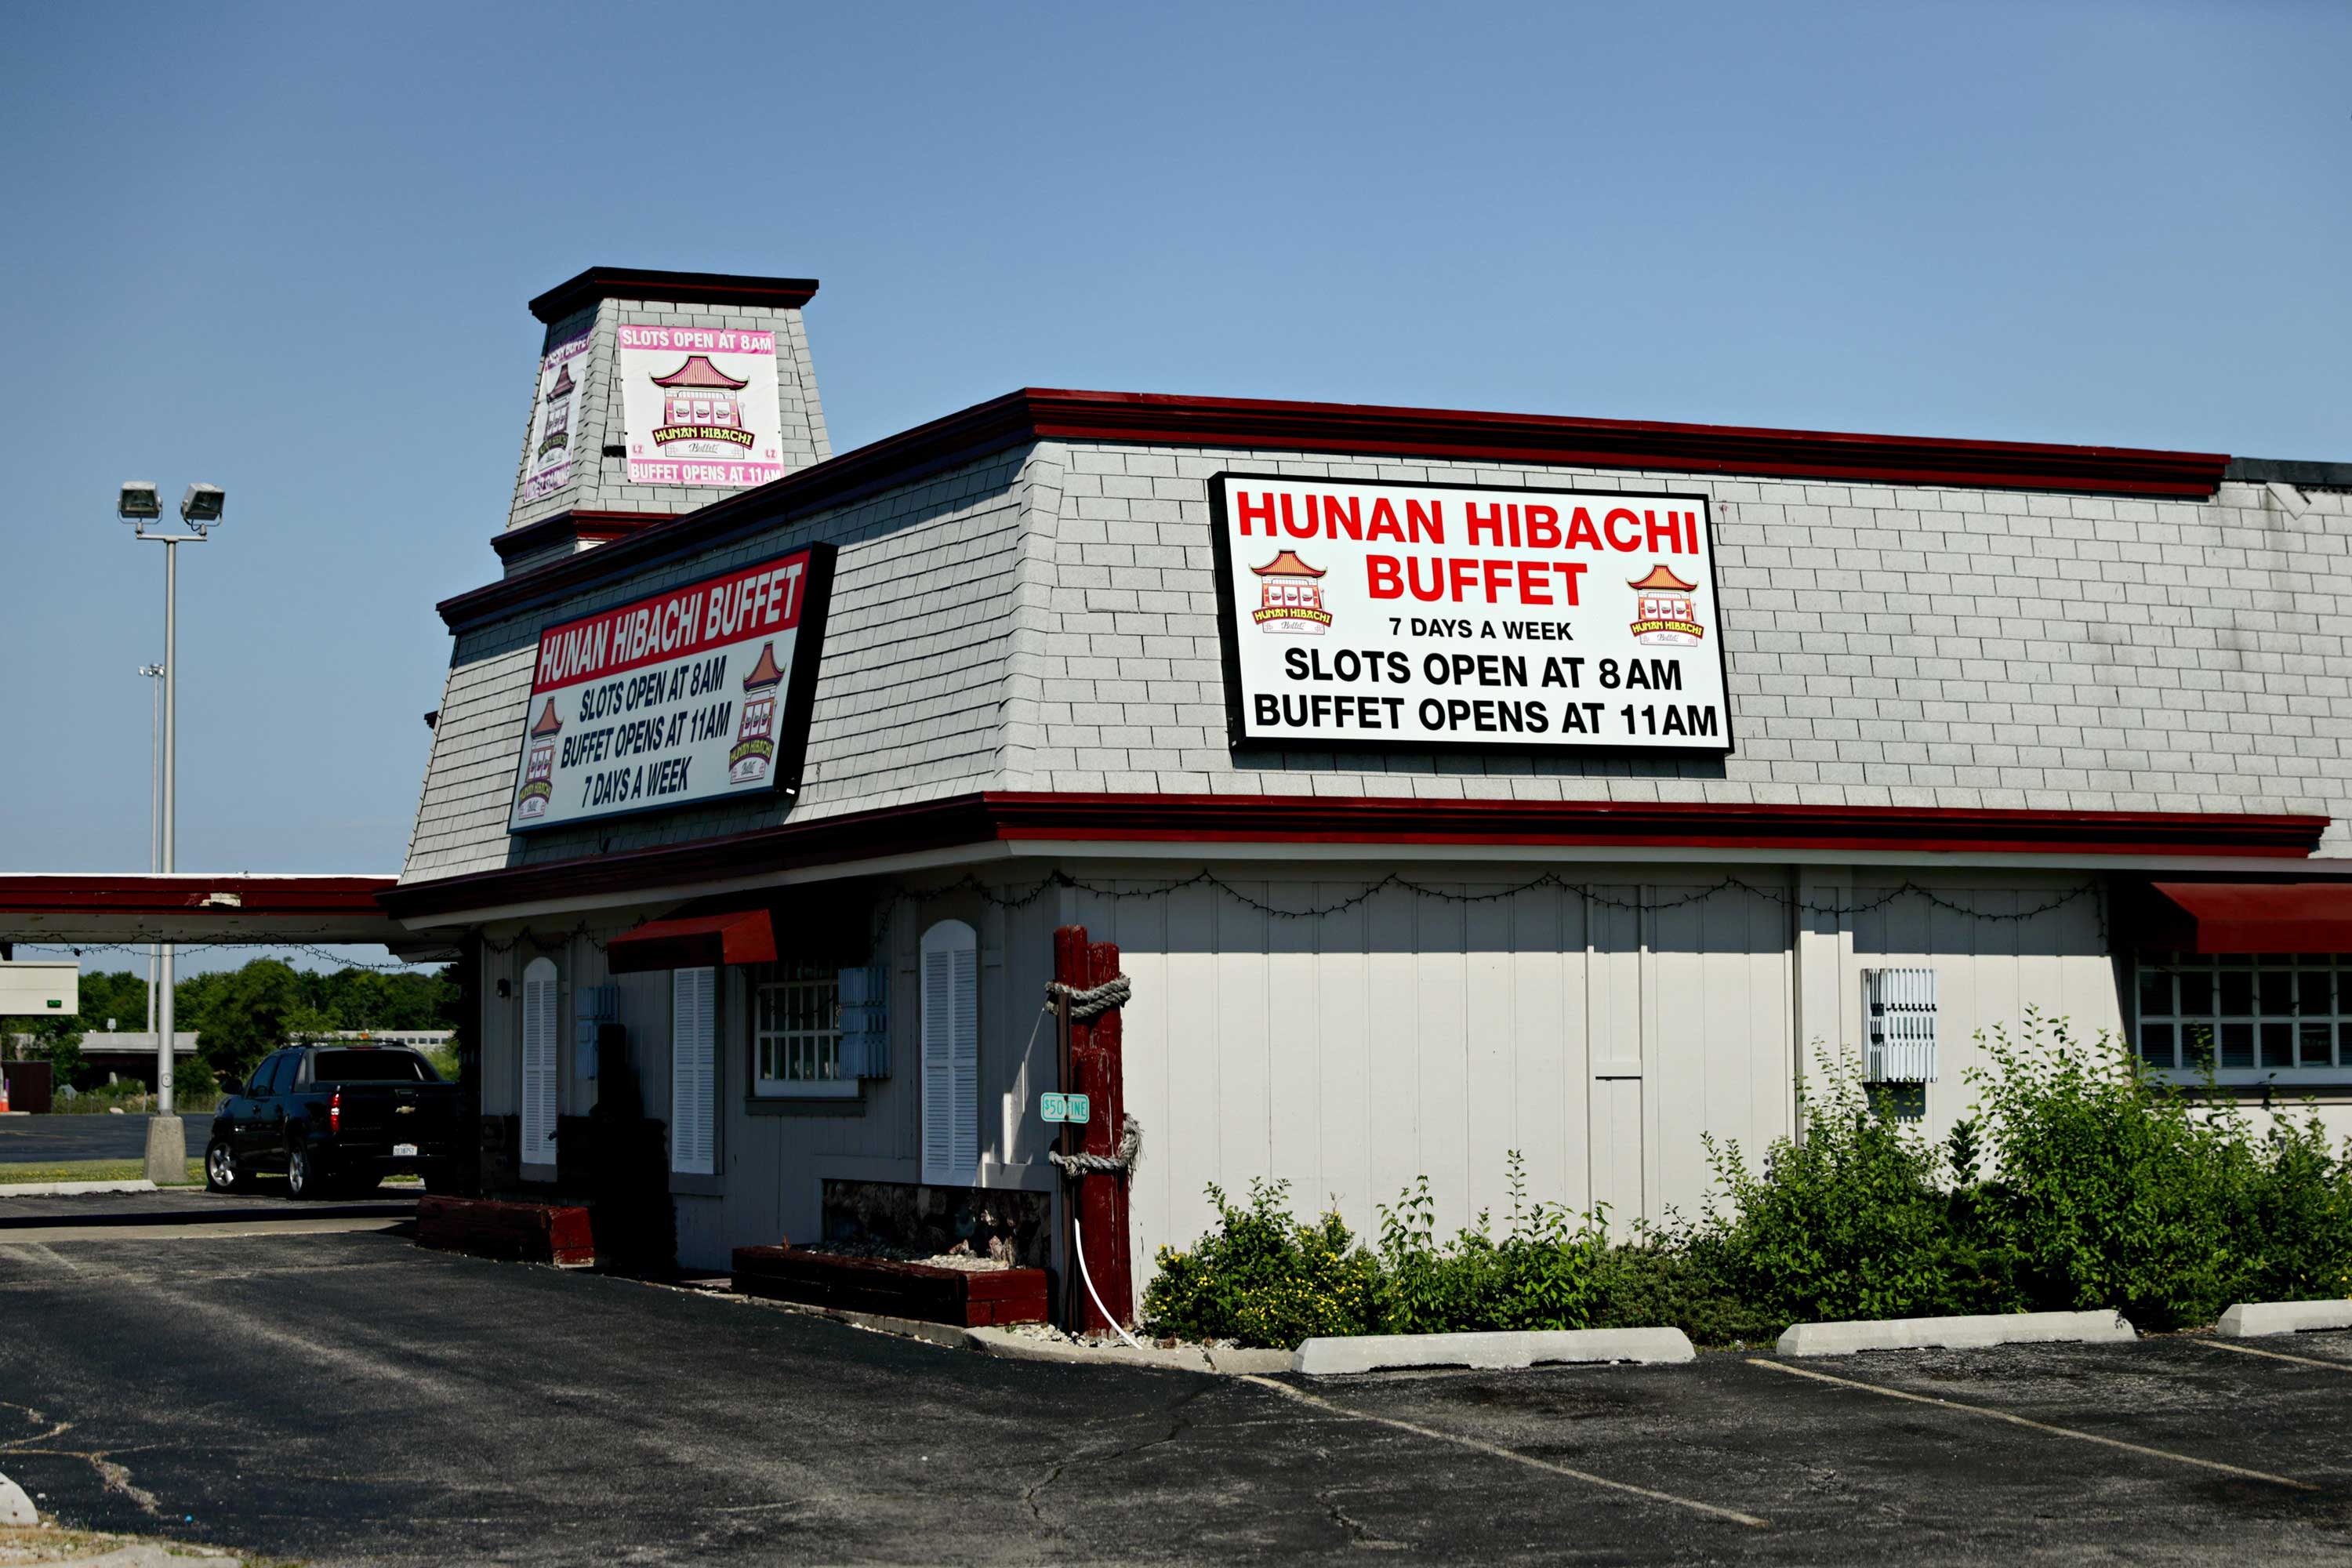 Hunan Hibachi Buffet, which currently offers video slots, is located across from the possible site where Waukegan's new casino may be located.